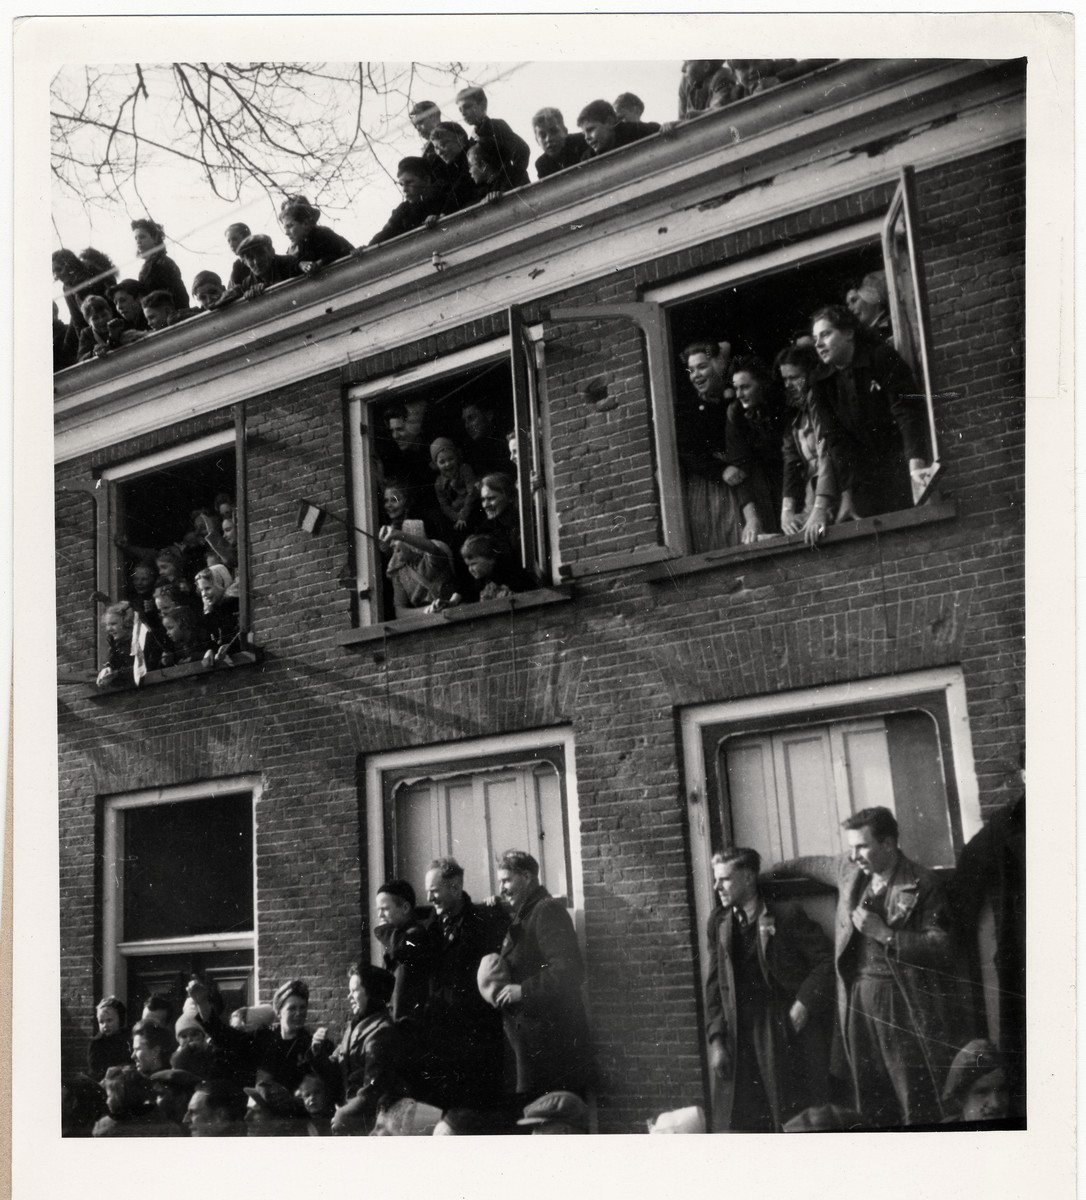 """Men, women and children crowd the windows of their homes in Domburn on Walcheren Island to see and welcome Queen Wilhelmina.  Original Caption: """"In her first visit to her country after five years of exile, Queen Wilhelmina cisted every town, every village and every hamlet that she could fit into a 10-day tour of liberated areas in Hlooand. The 65-year-old Queen did not spare herself. She saw the vast stretches of inundated countryside, which will remain barren for years to come even after the bombed dikes of The Netherlands are repaired. She saw the depris of towns where fighting took place only a few days before her visit, gave sympathy and solace to men, woman and children who were wounded or bereaved. She met the valiant miners of Hoerlan and Venlo. Wherever she stopped, she talked with the men and women wo fought stubbornly and silently in the Dutch Resistance Movement. It was announced March 23, 1945, that the unofficial, unplanned tour had ended with queen Wilhelmina's return to England. The queen was born in the Hague in 1880 and has reigned on the Dutch throne since 1890. When the Germans invaded Holland in May, 1940, Queen Wilhelmina was forced to flee to England."""""""